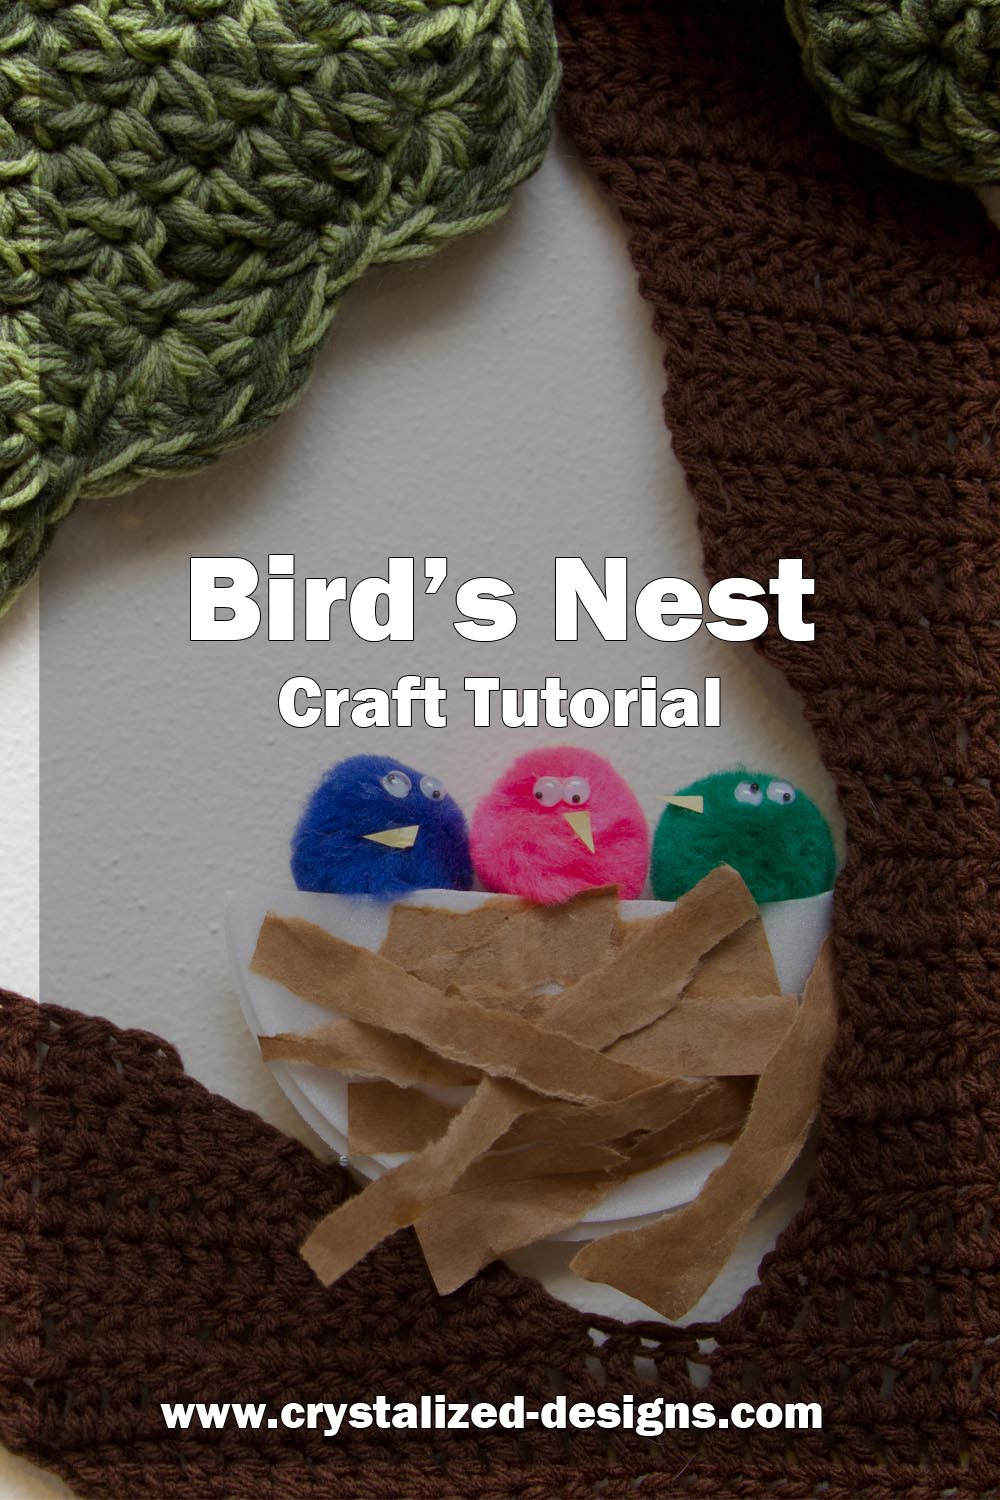 Birds Nest Craft Tutorial by Crystalized Designs